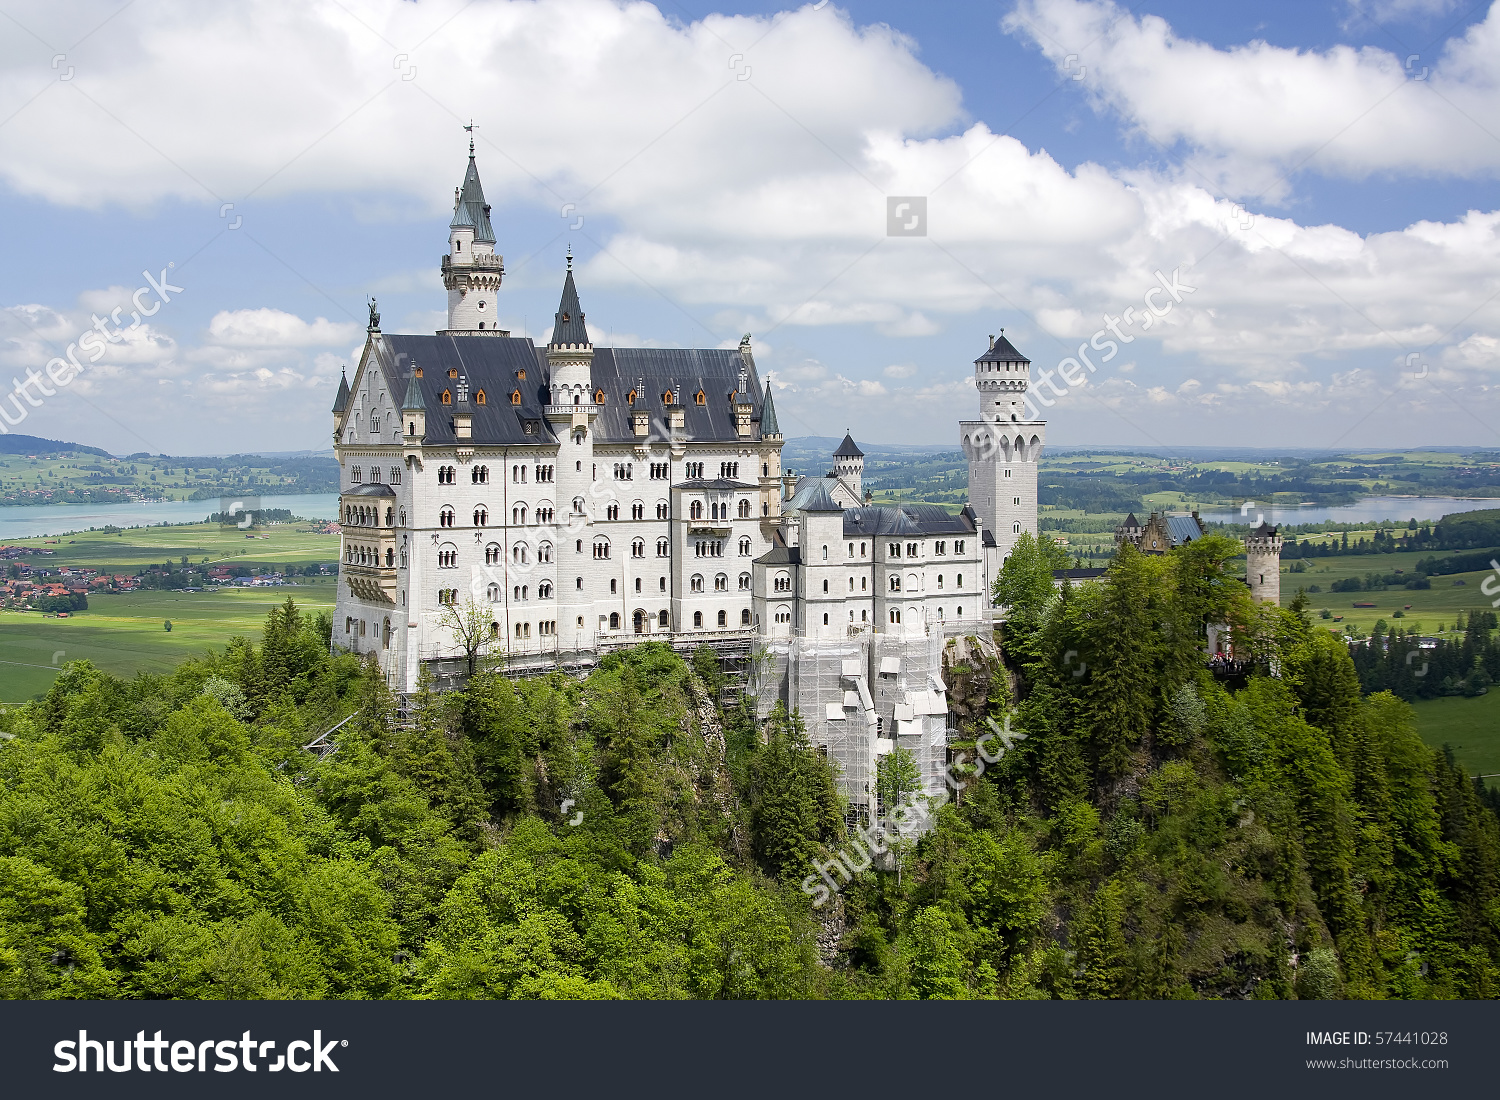 Germanies Best Known Castle Built By Stock Photo 57441028.